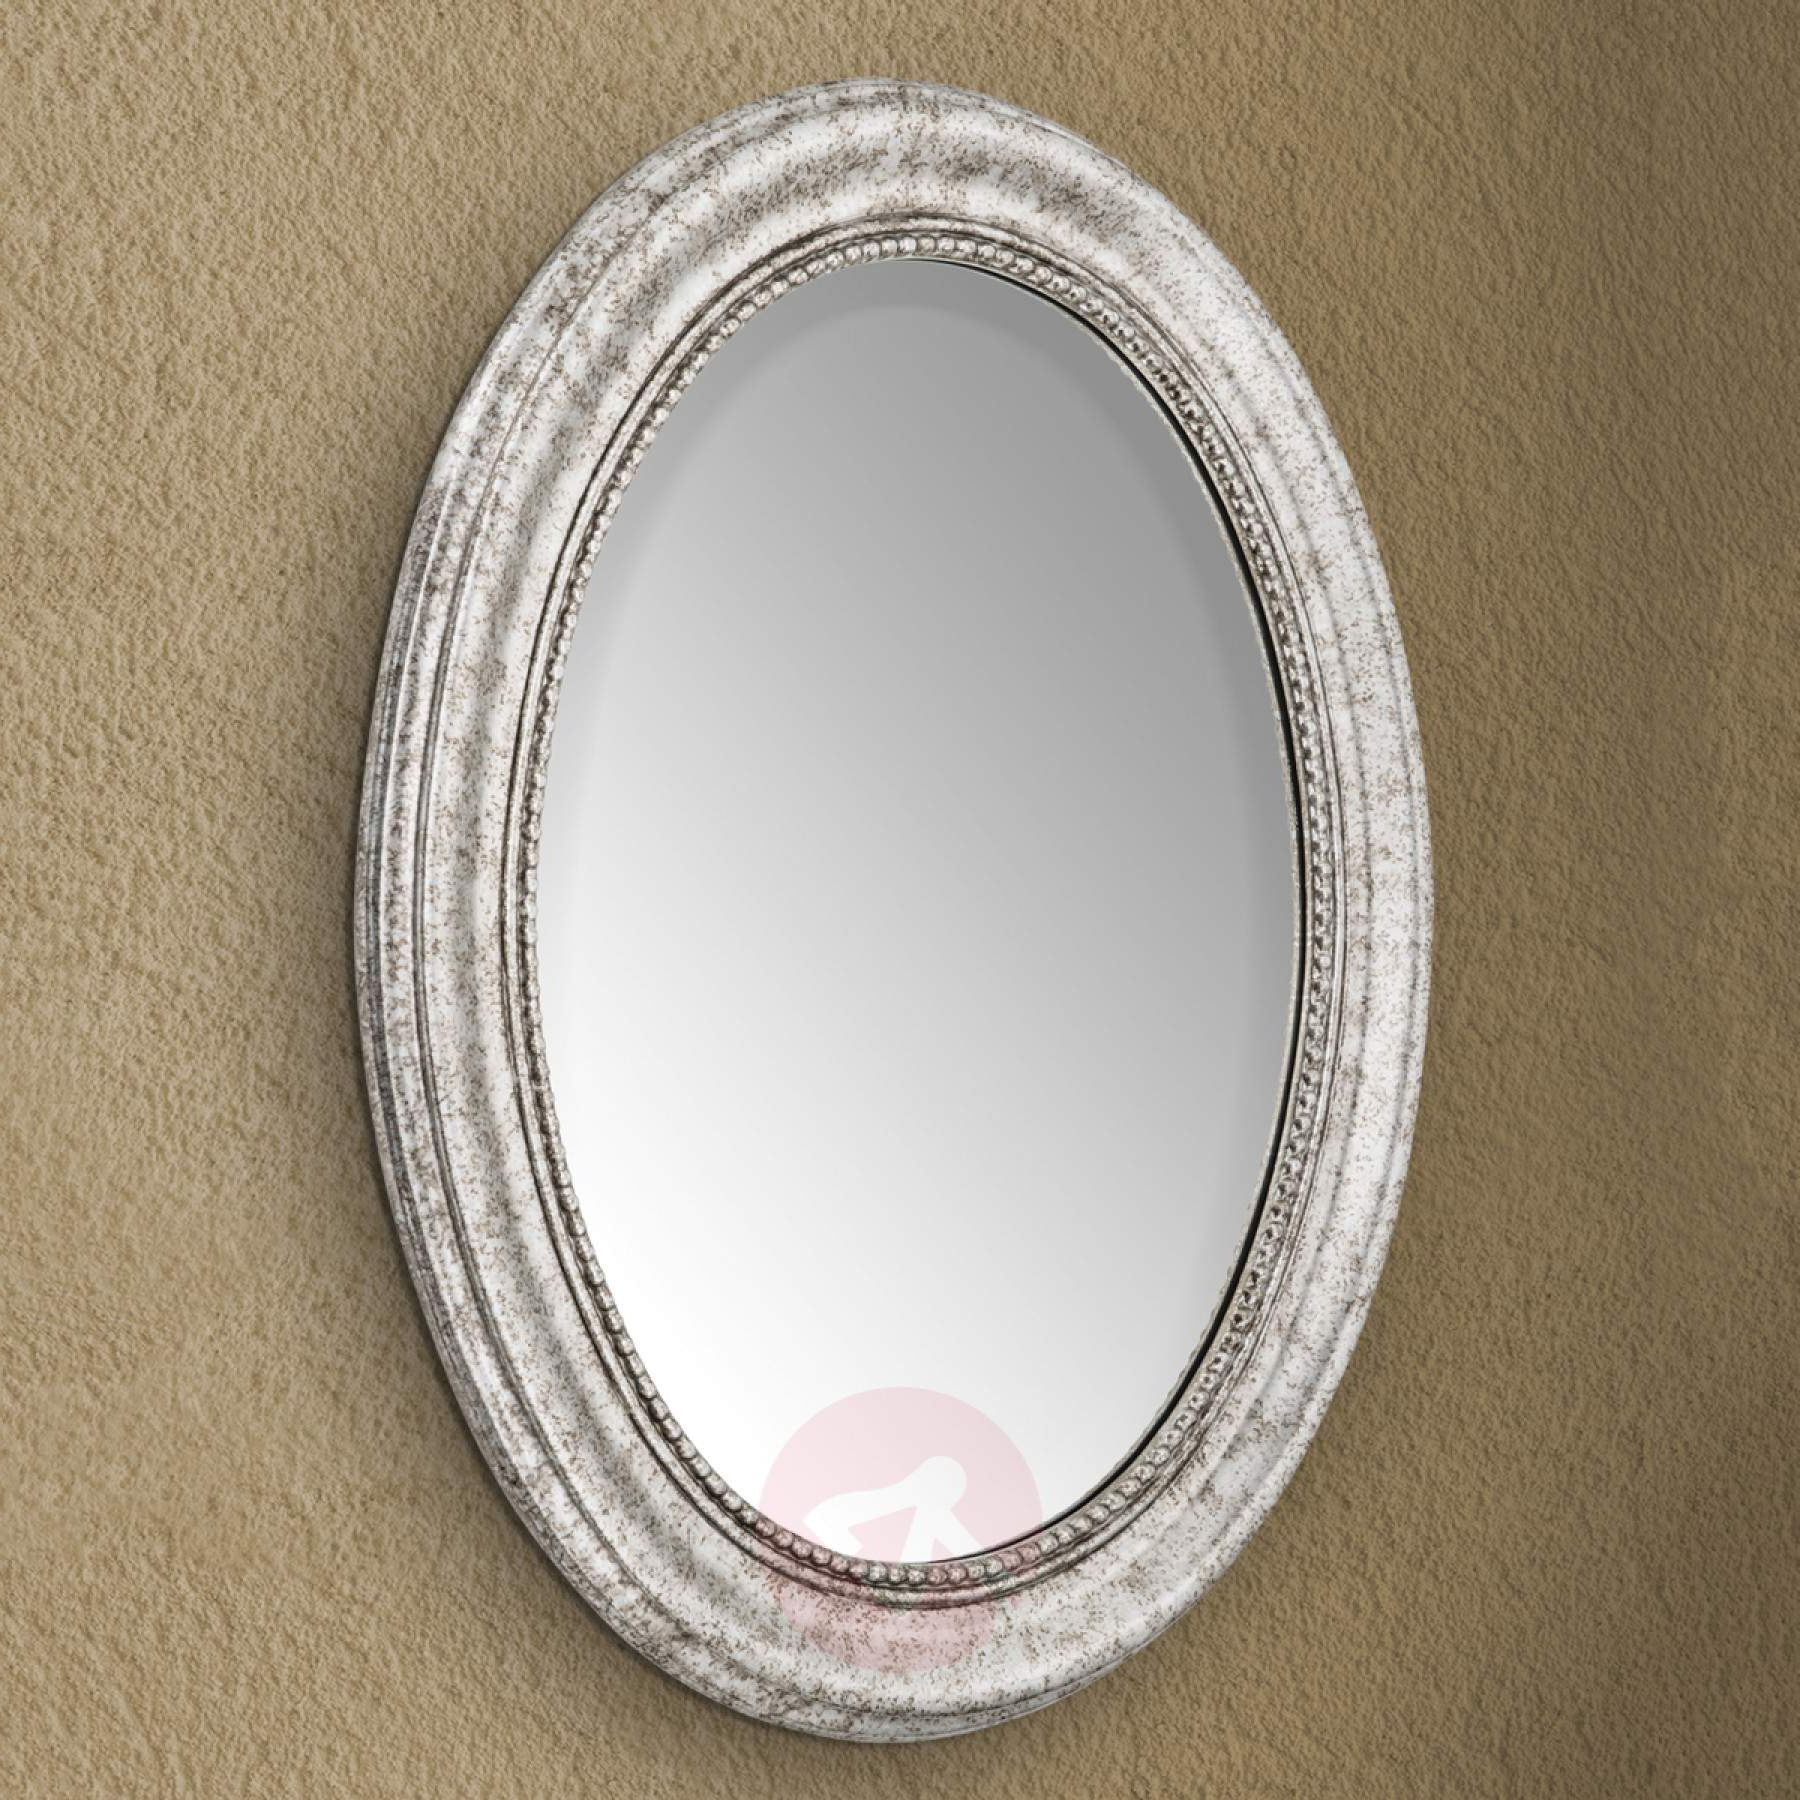 Oval Wood Wall Mirrors With Well Known Oval Wall Mirror Willa With Silver Wooden Frame (View 9 of 20)